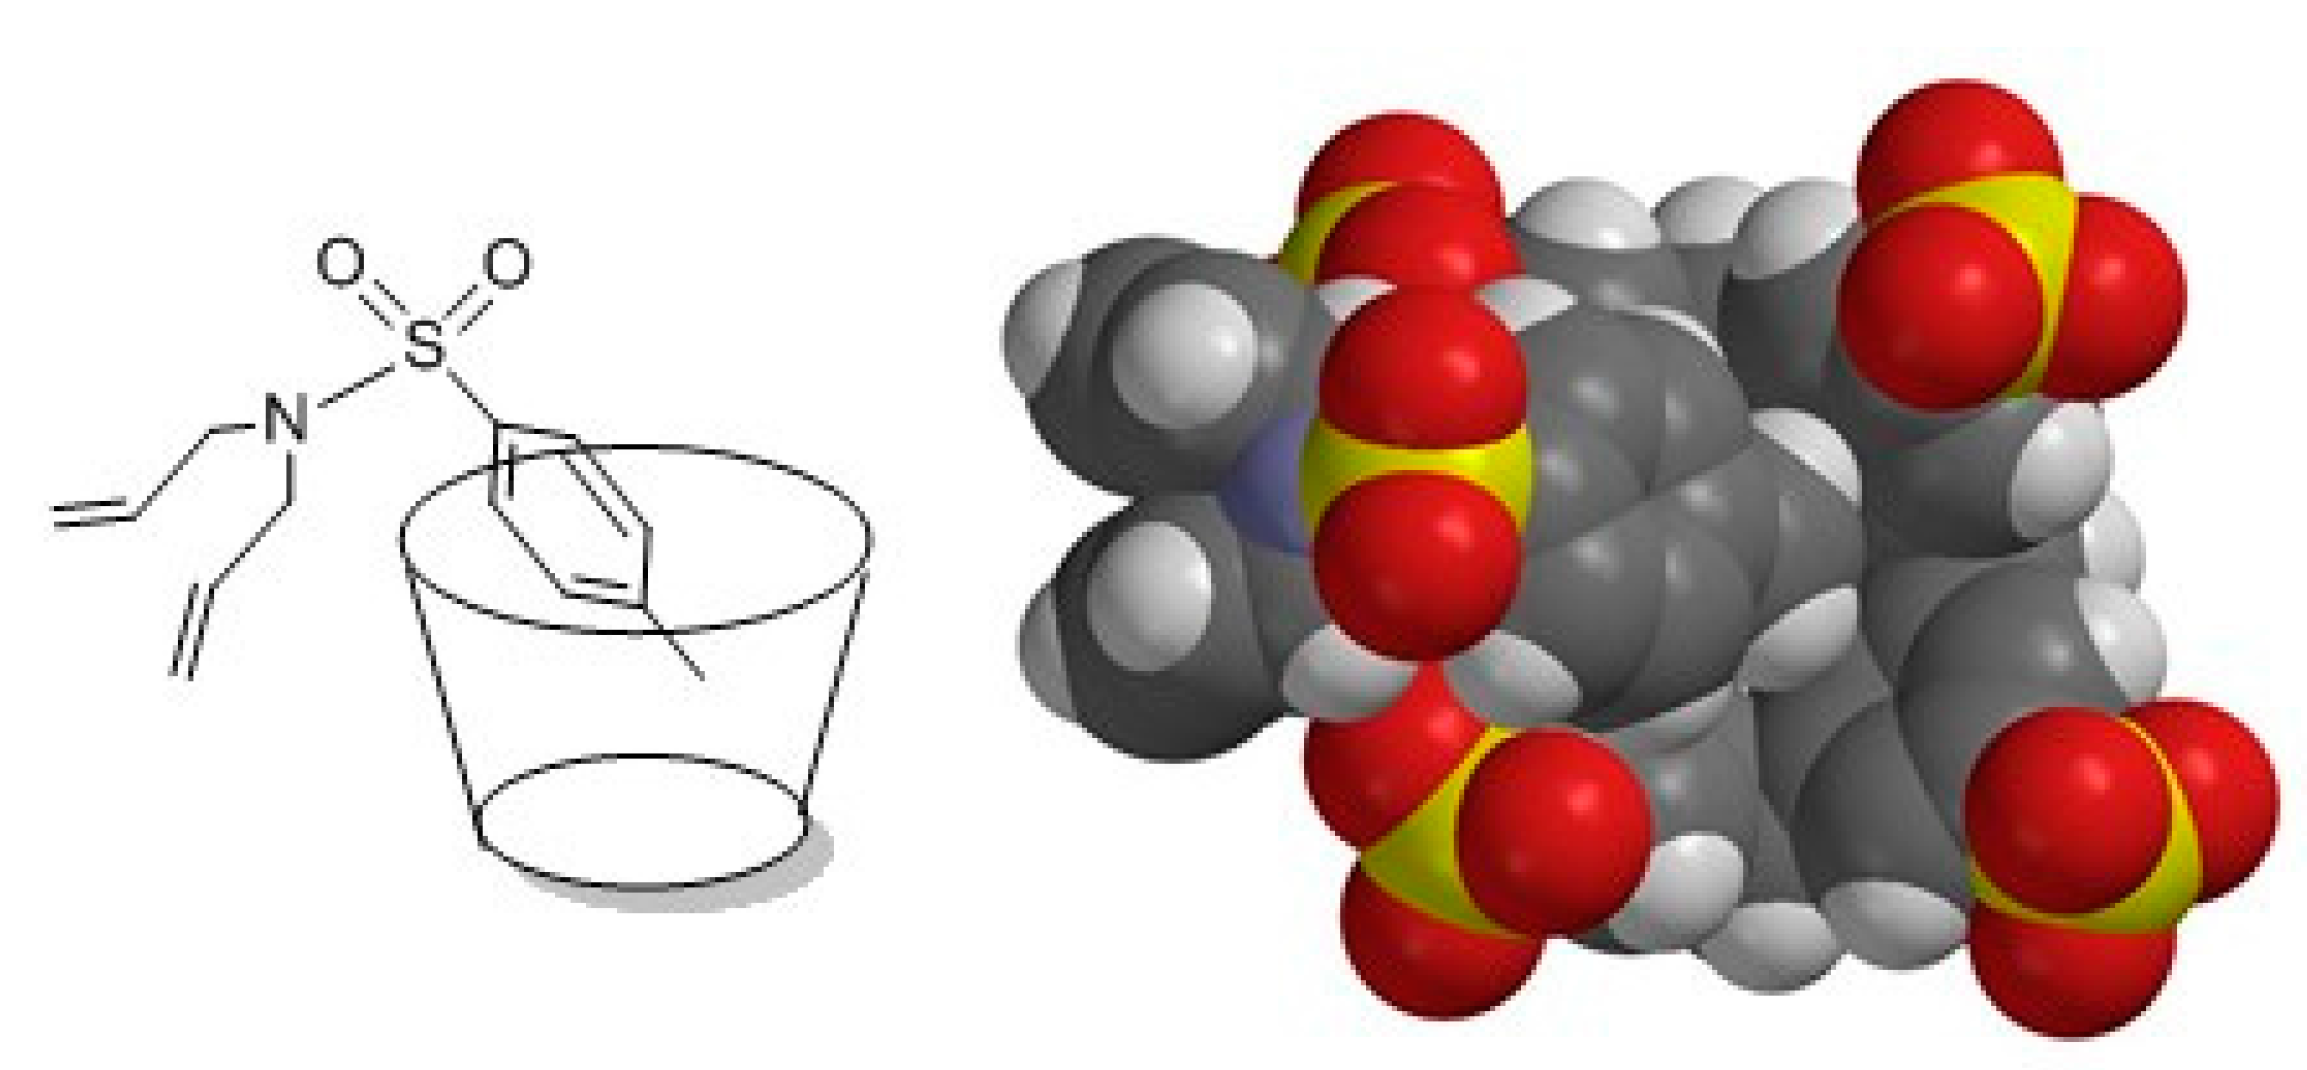 olefin metathesis in water Figure 8 schematic representation of complex conformation (left), mmff optimization of 1:1 complex of host 1a with guest 7 (right) - olefin metathesis reaction in water and in air improved by supramolecular additives.